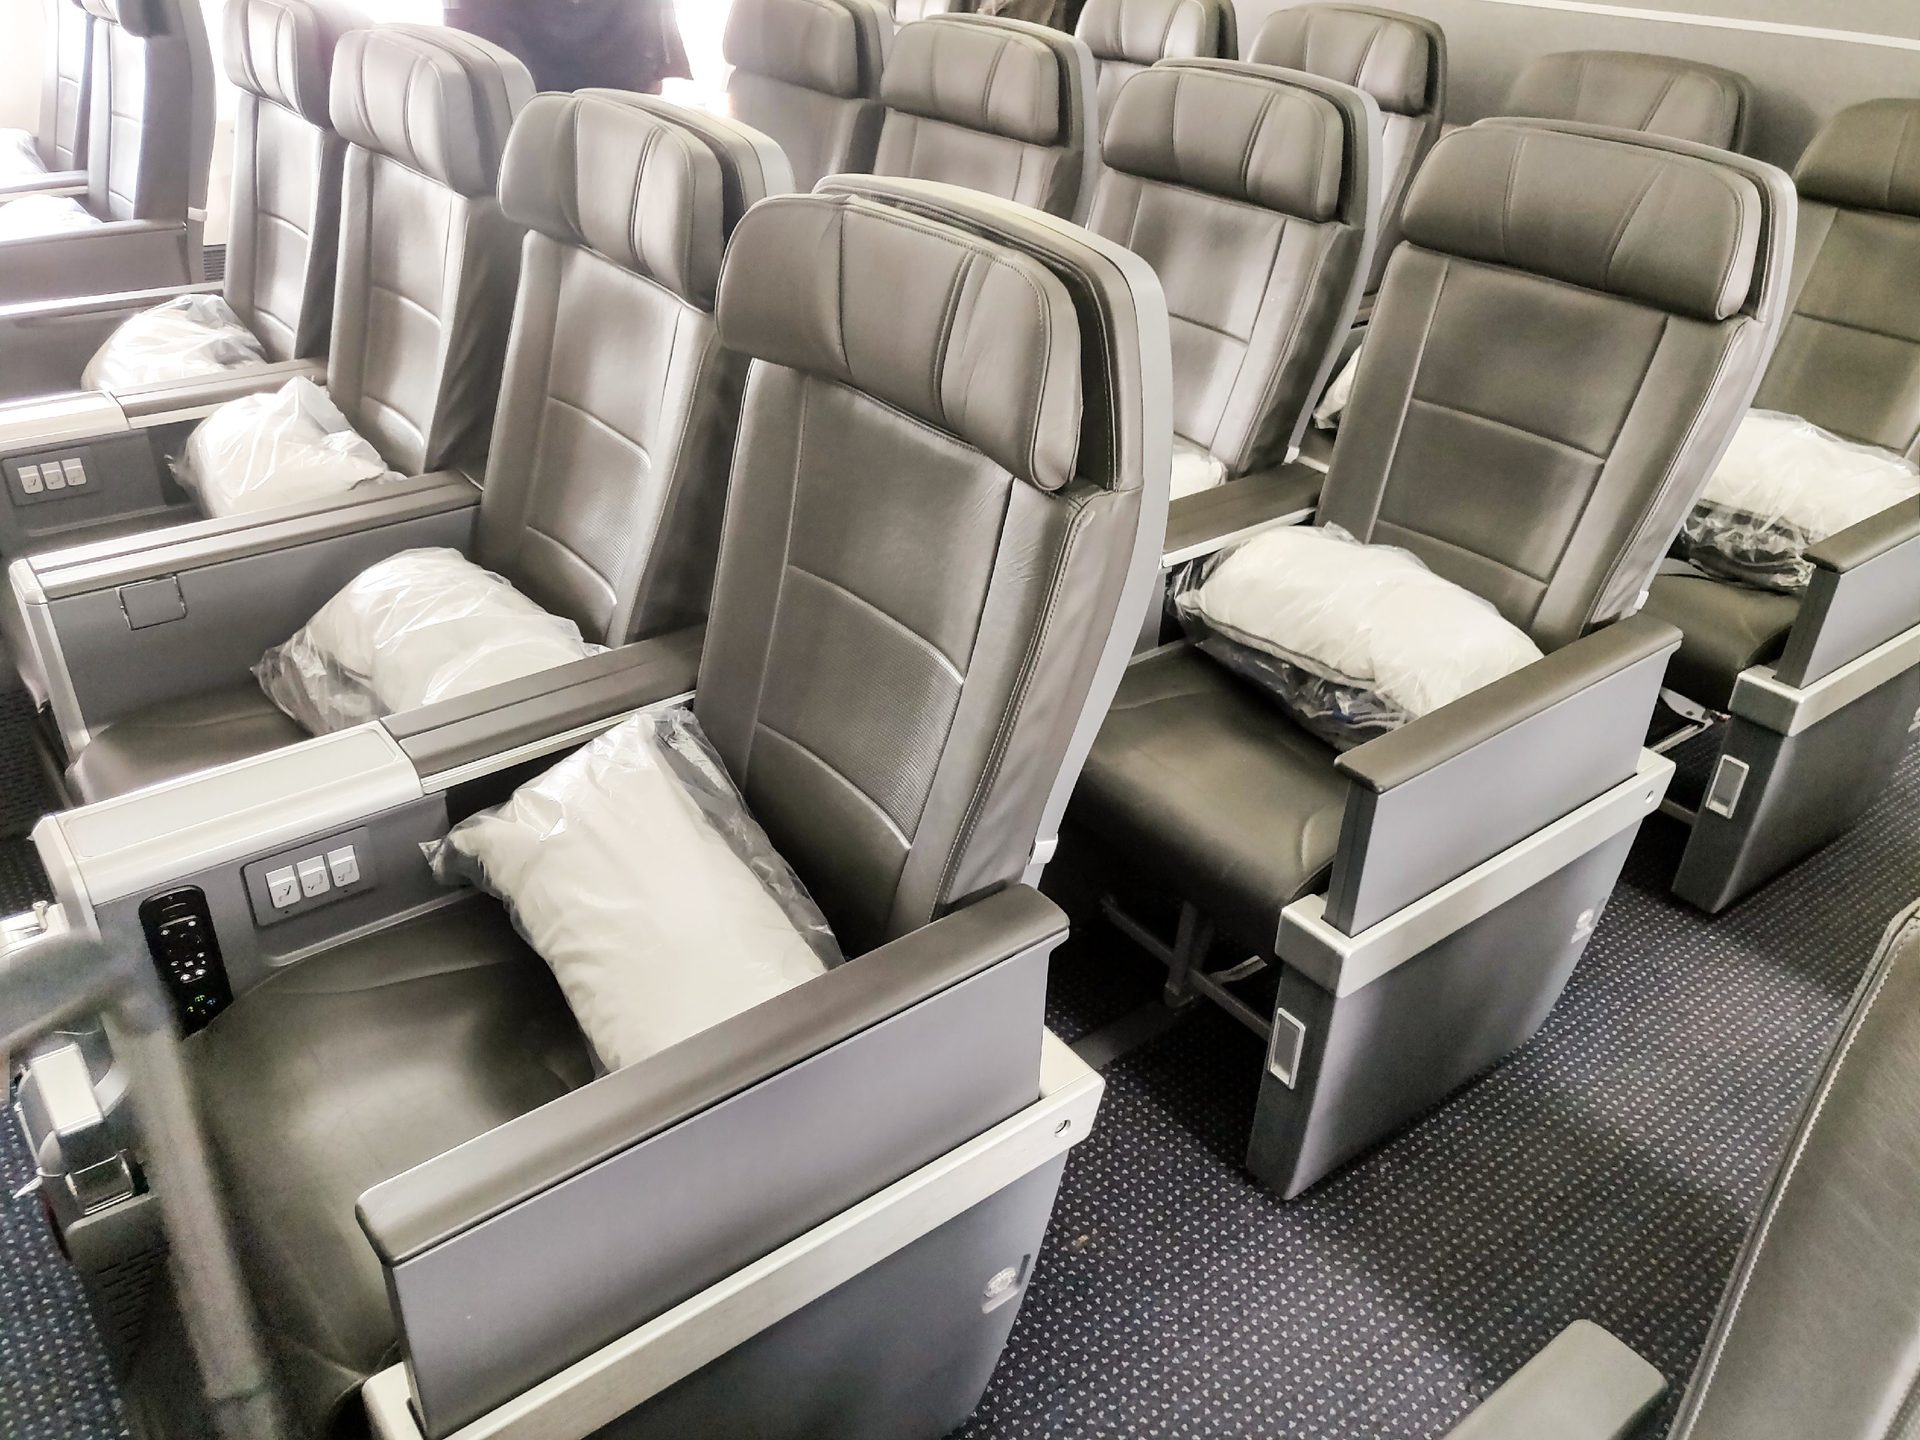 Travel Like a Mid-Level BOSS in American Airlines Premium Economy.